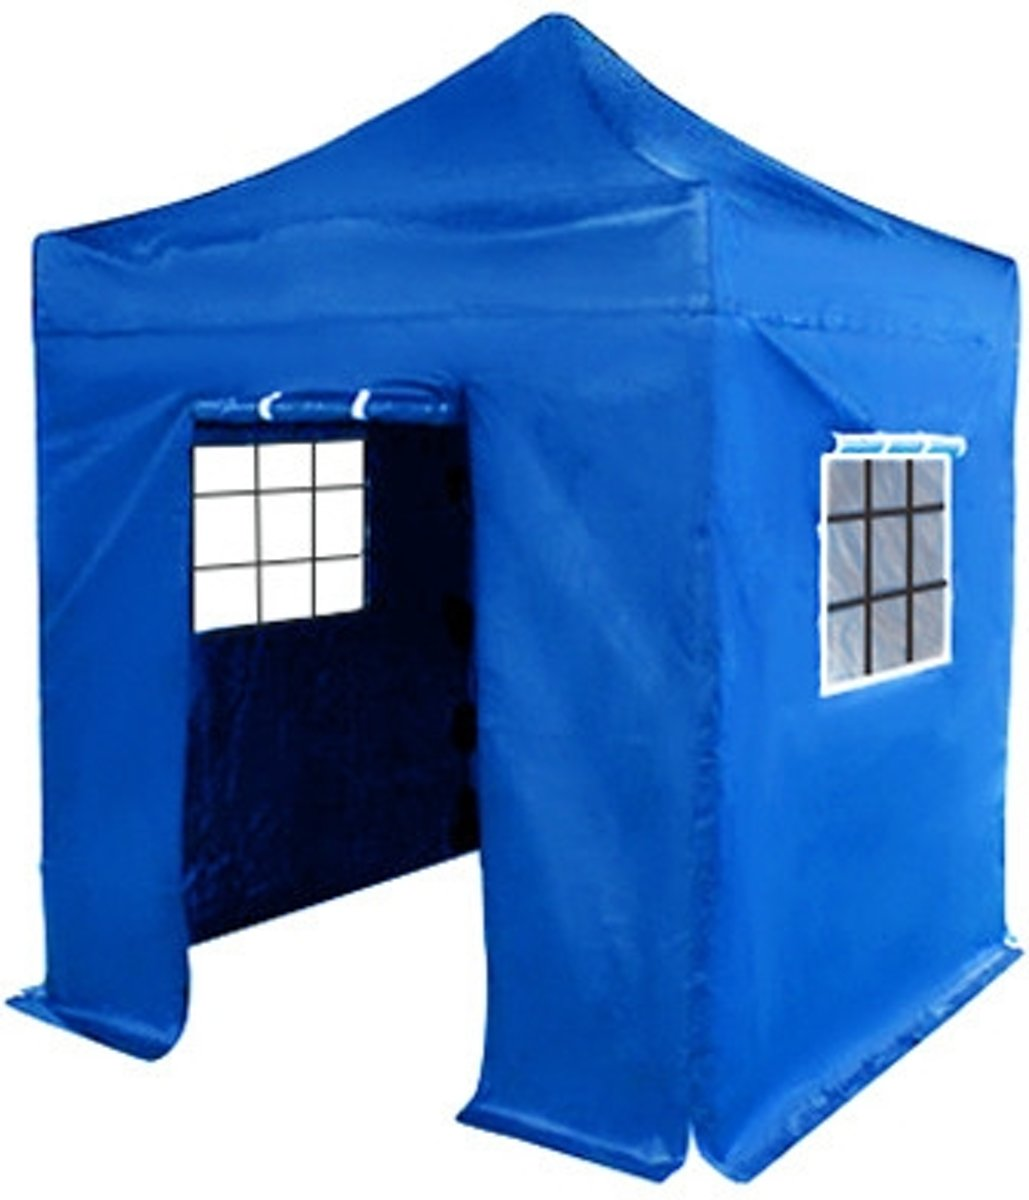 Zwembad 2x2m Easy Up 2x2m Blauw Luxe Partytent